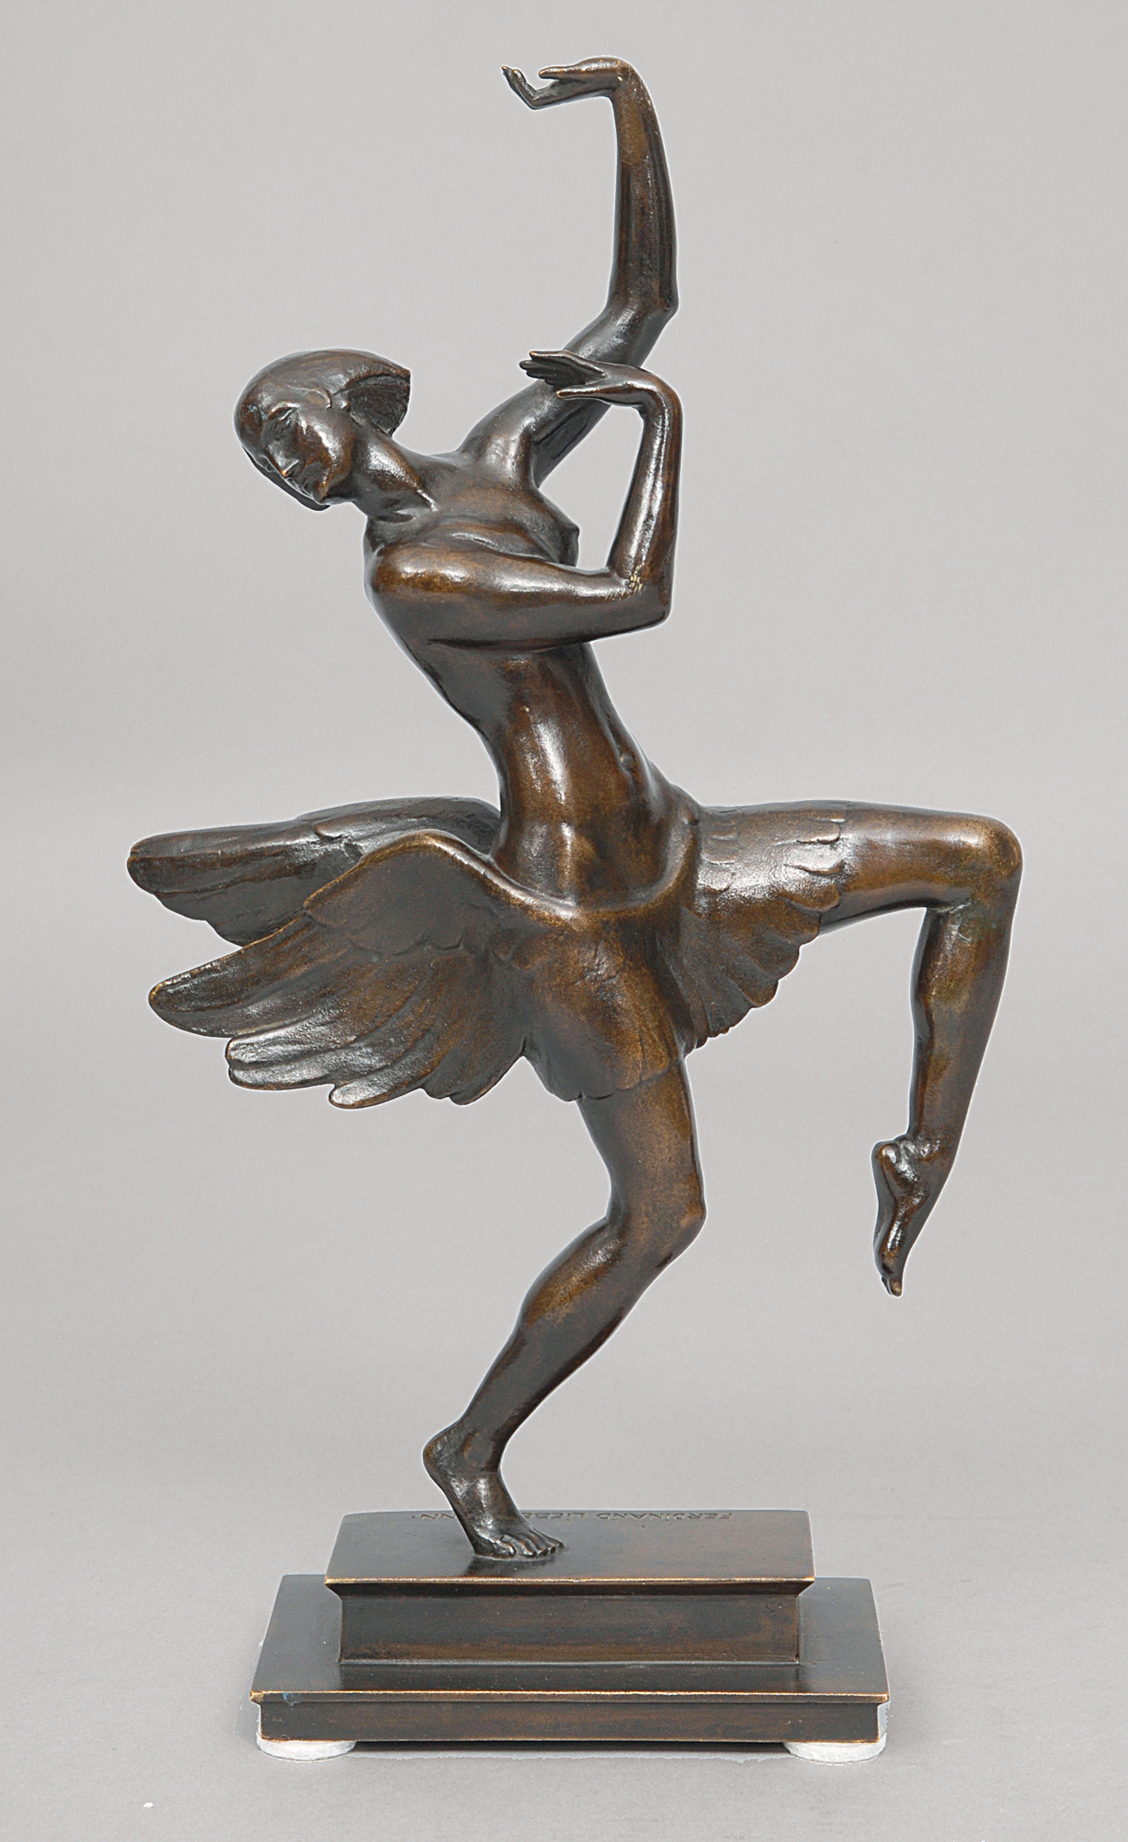 An Art-Déco bronze figure 'Dancer'